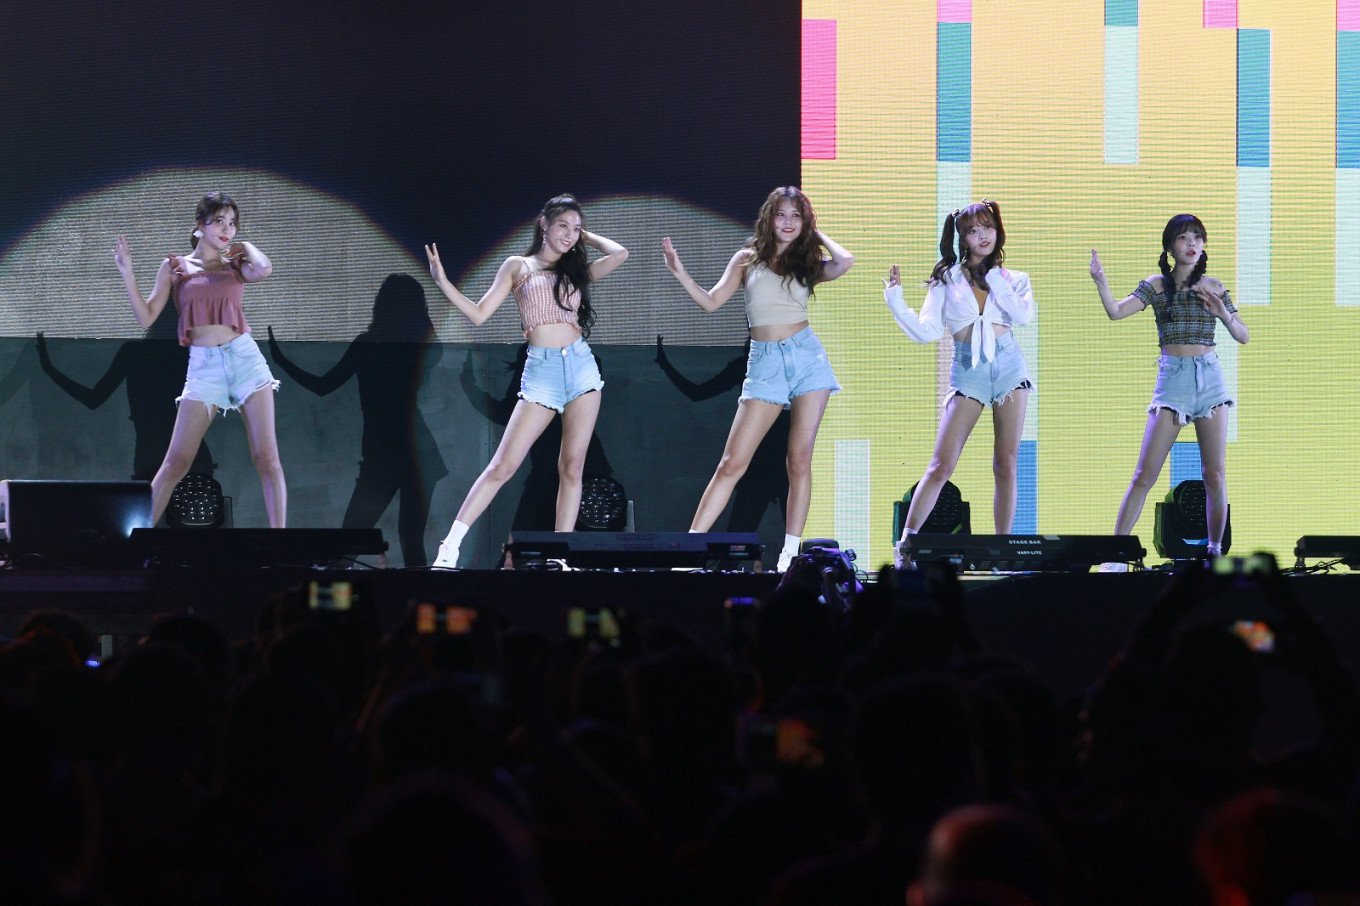 K-pop stars expose personal conflict in social media